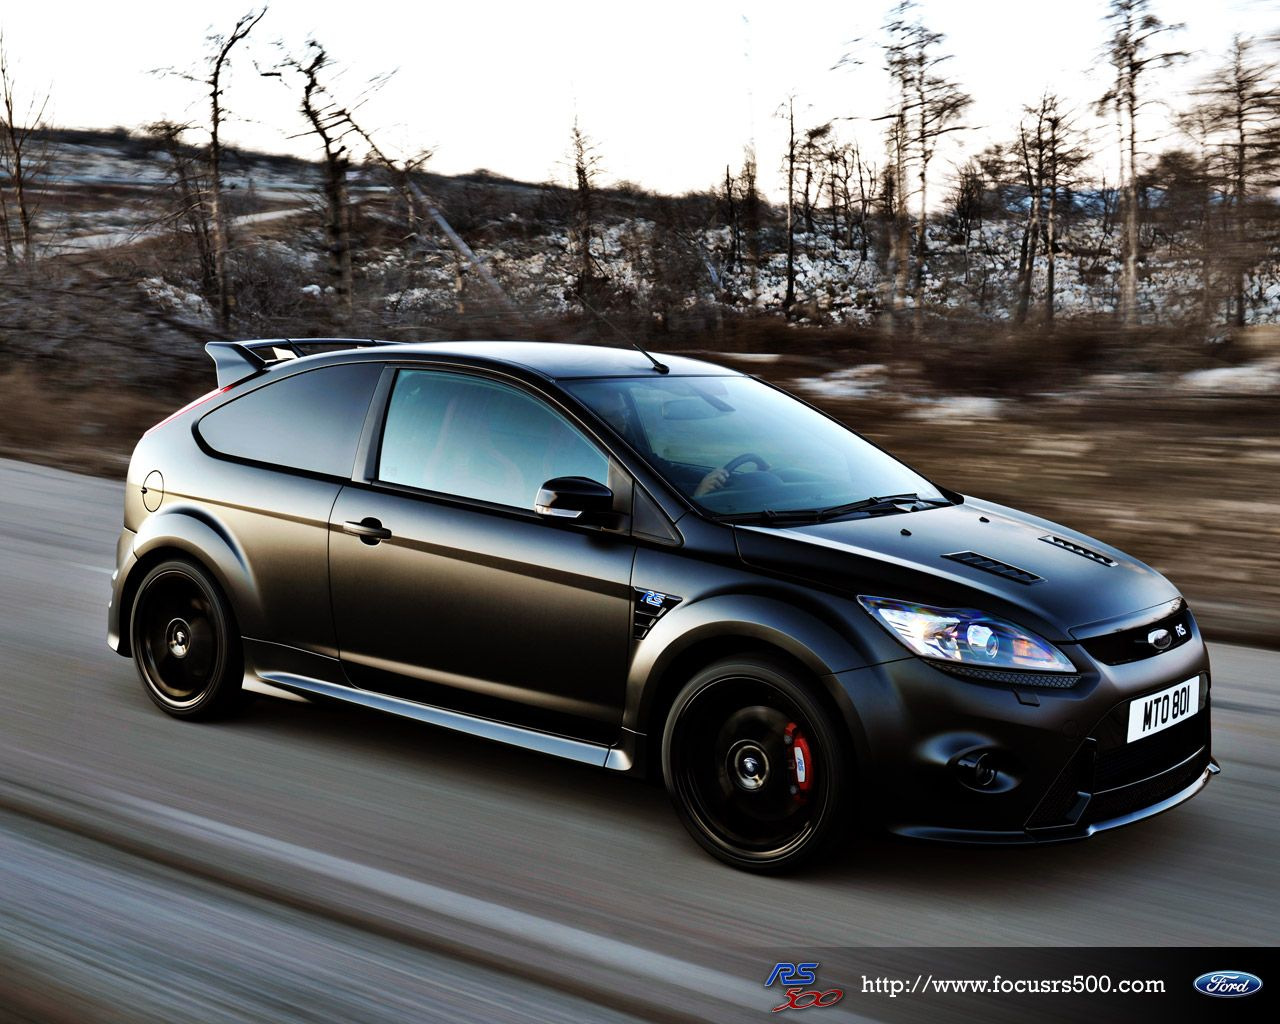 2007 ford focus wallpaper